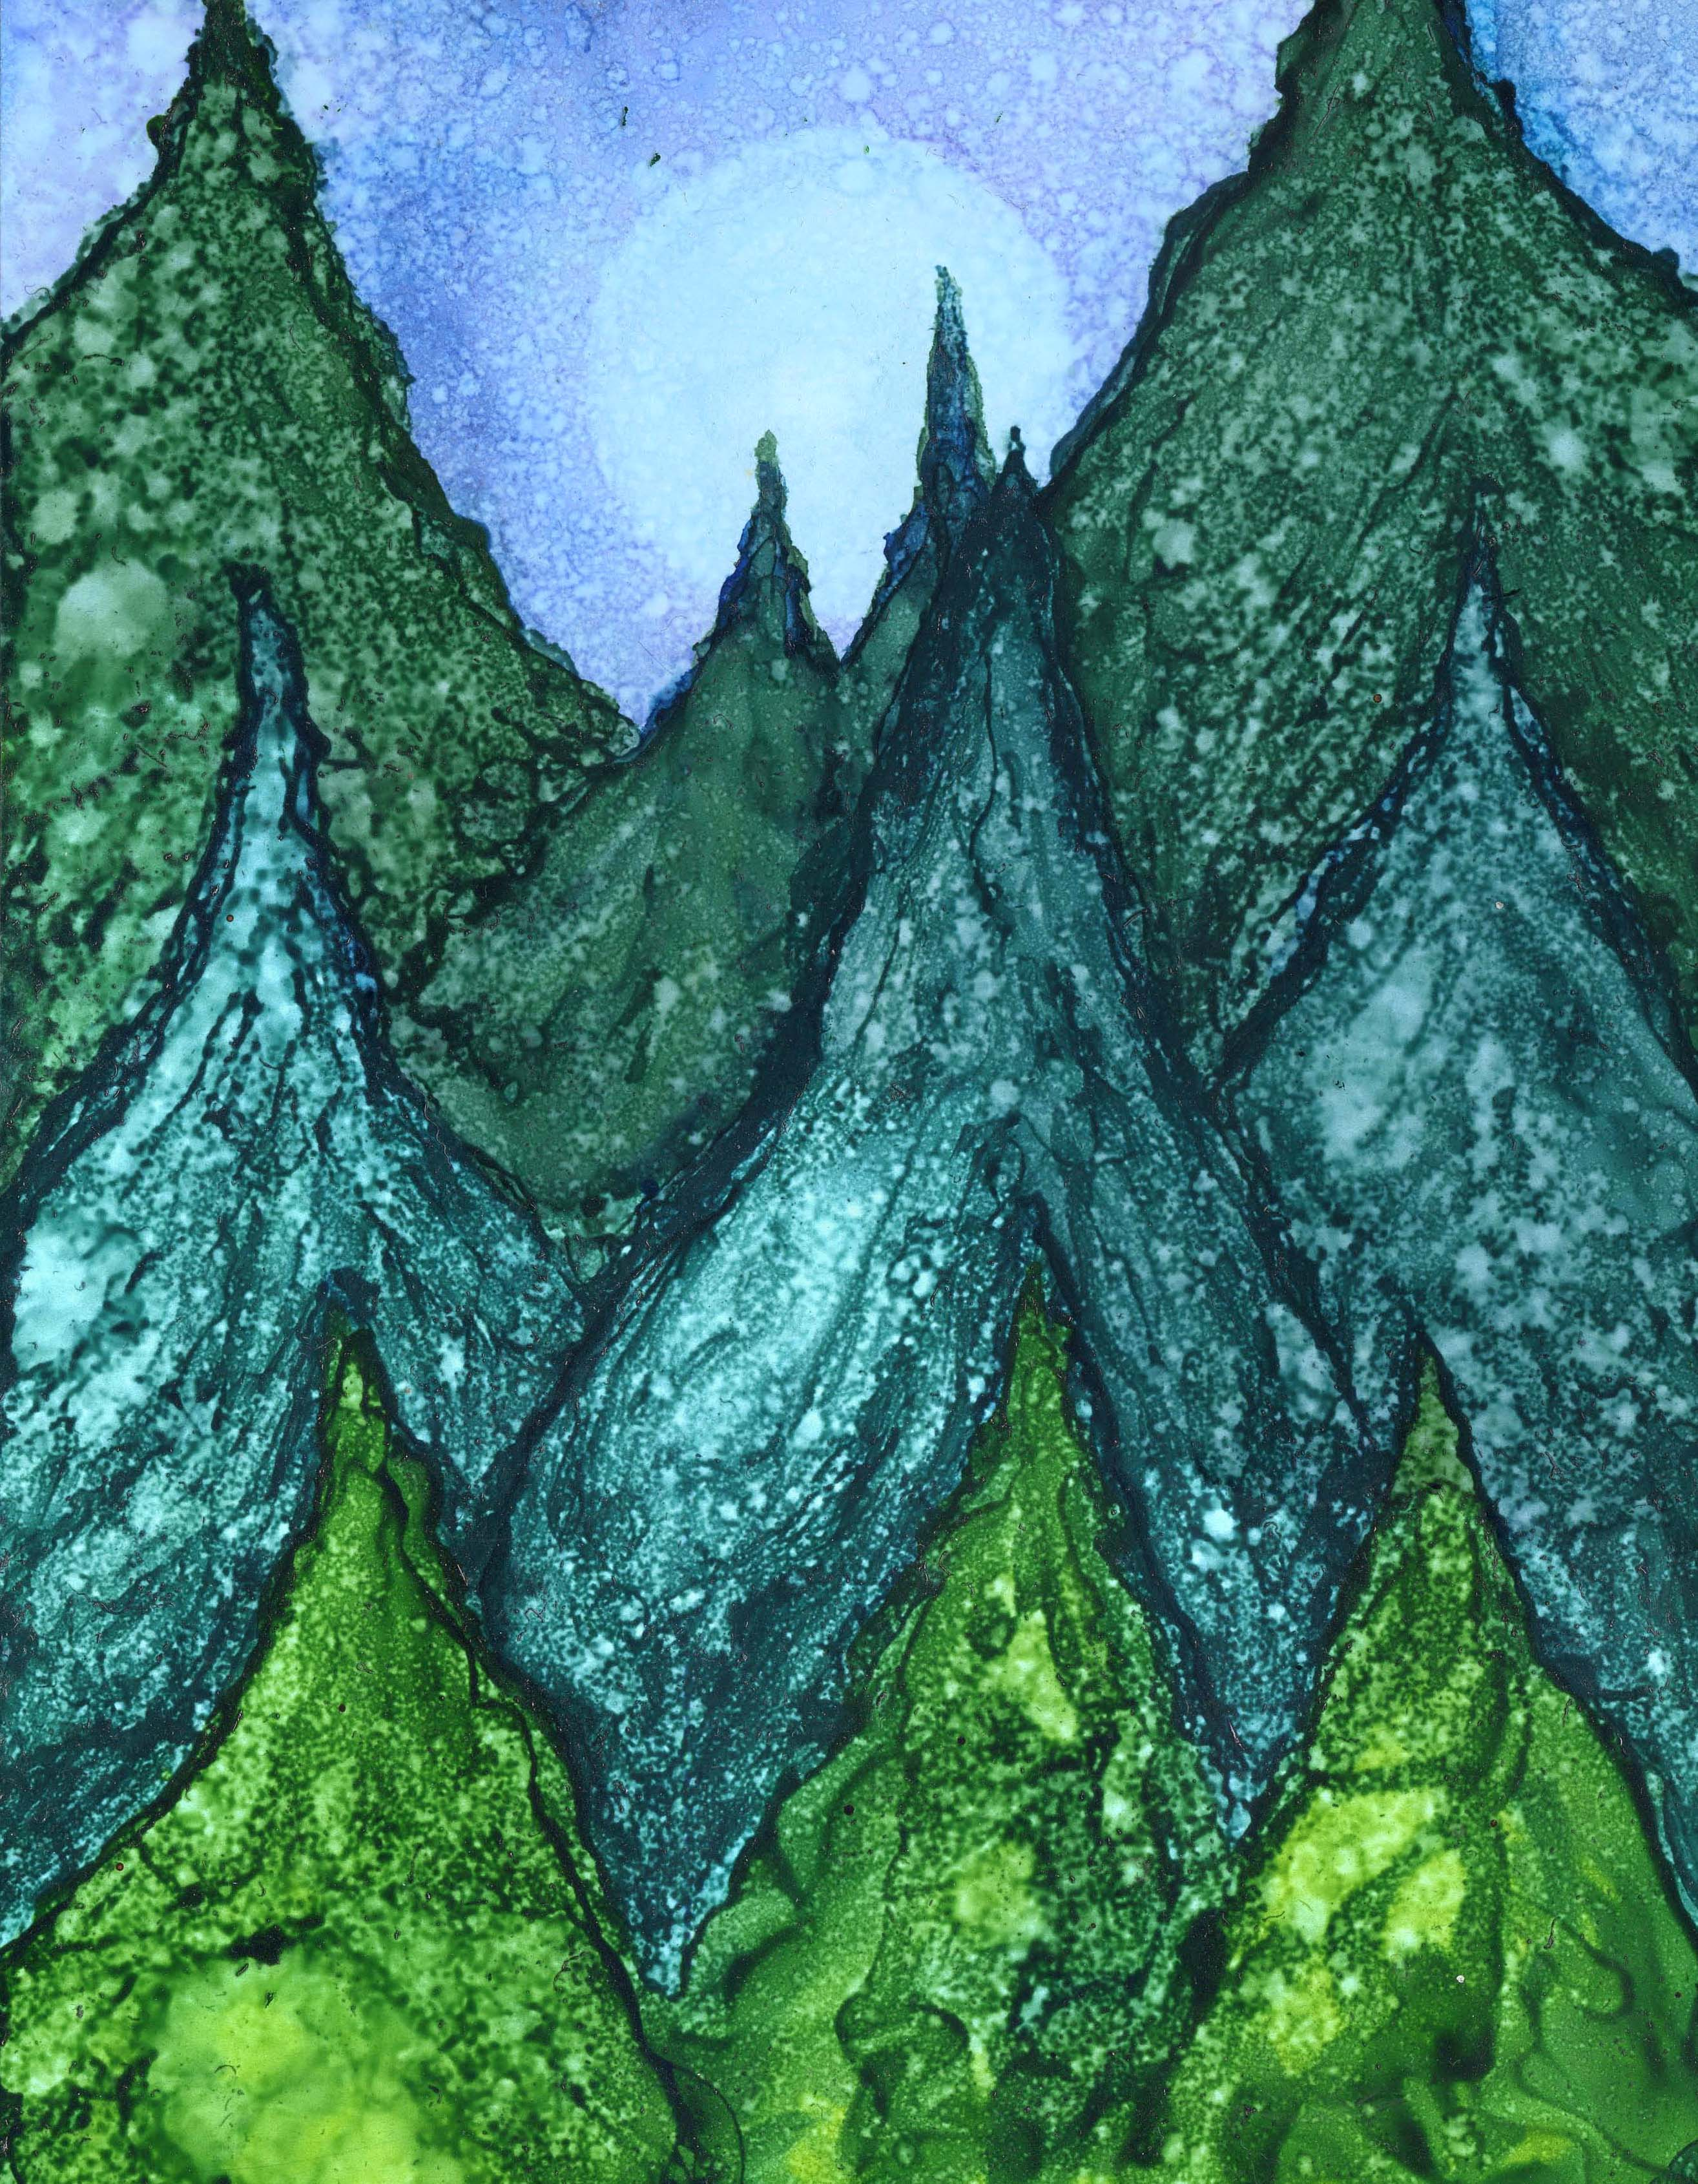 Enchanted Forest - Alcohol Ink 9 X 12 - $140 - Sold